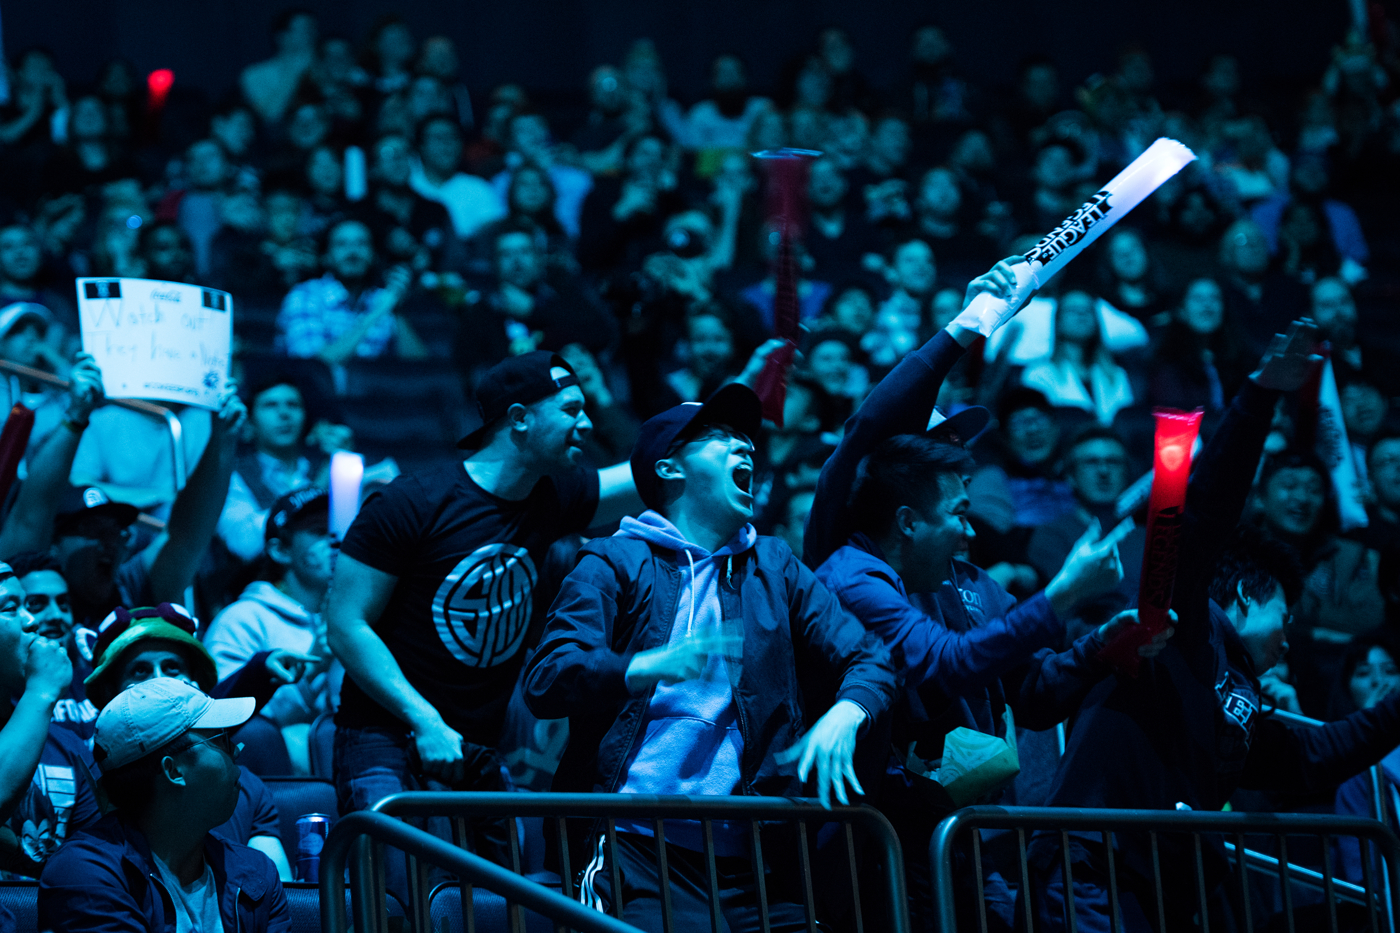 Fans of H2k-Gaming cheer for the team after they take a surprise first kill off of their opponents Samsung Galaxy in the first game of their best of five match.